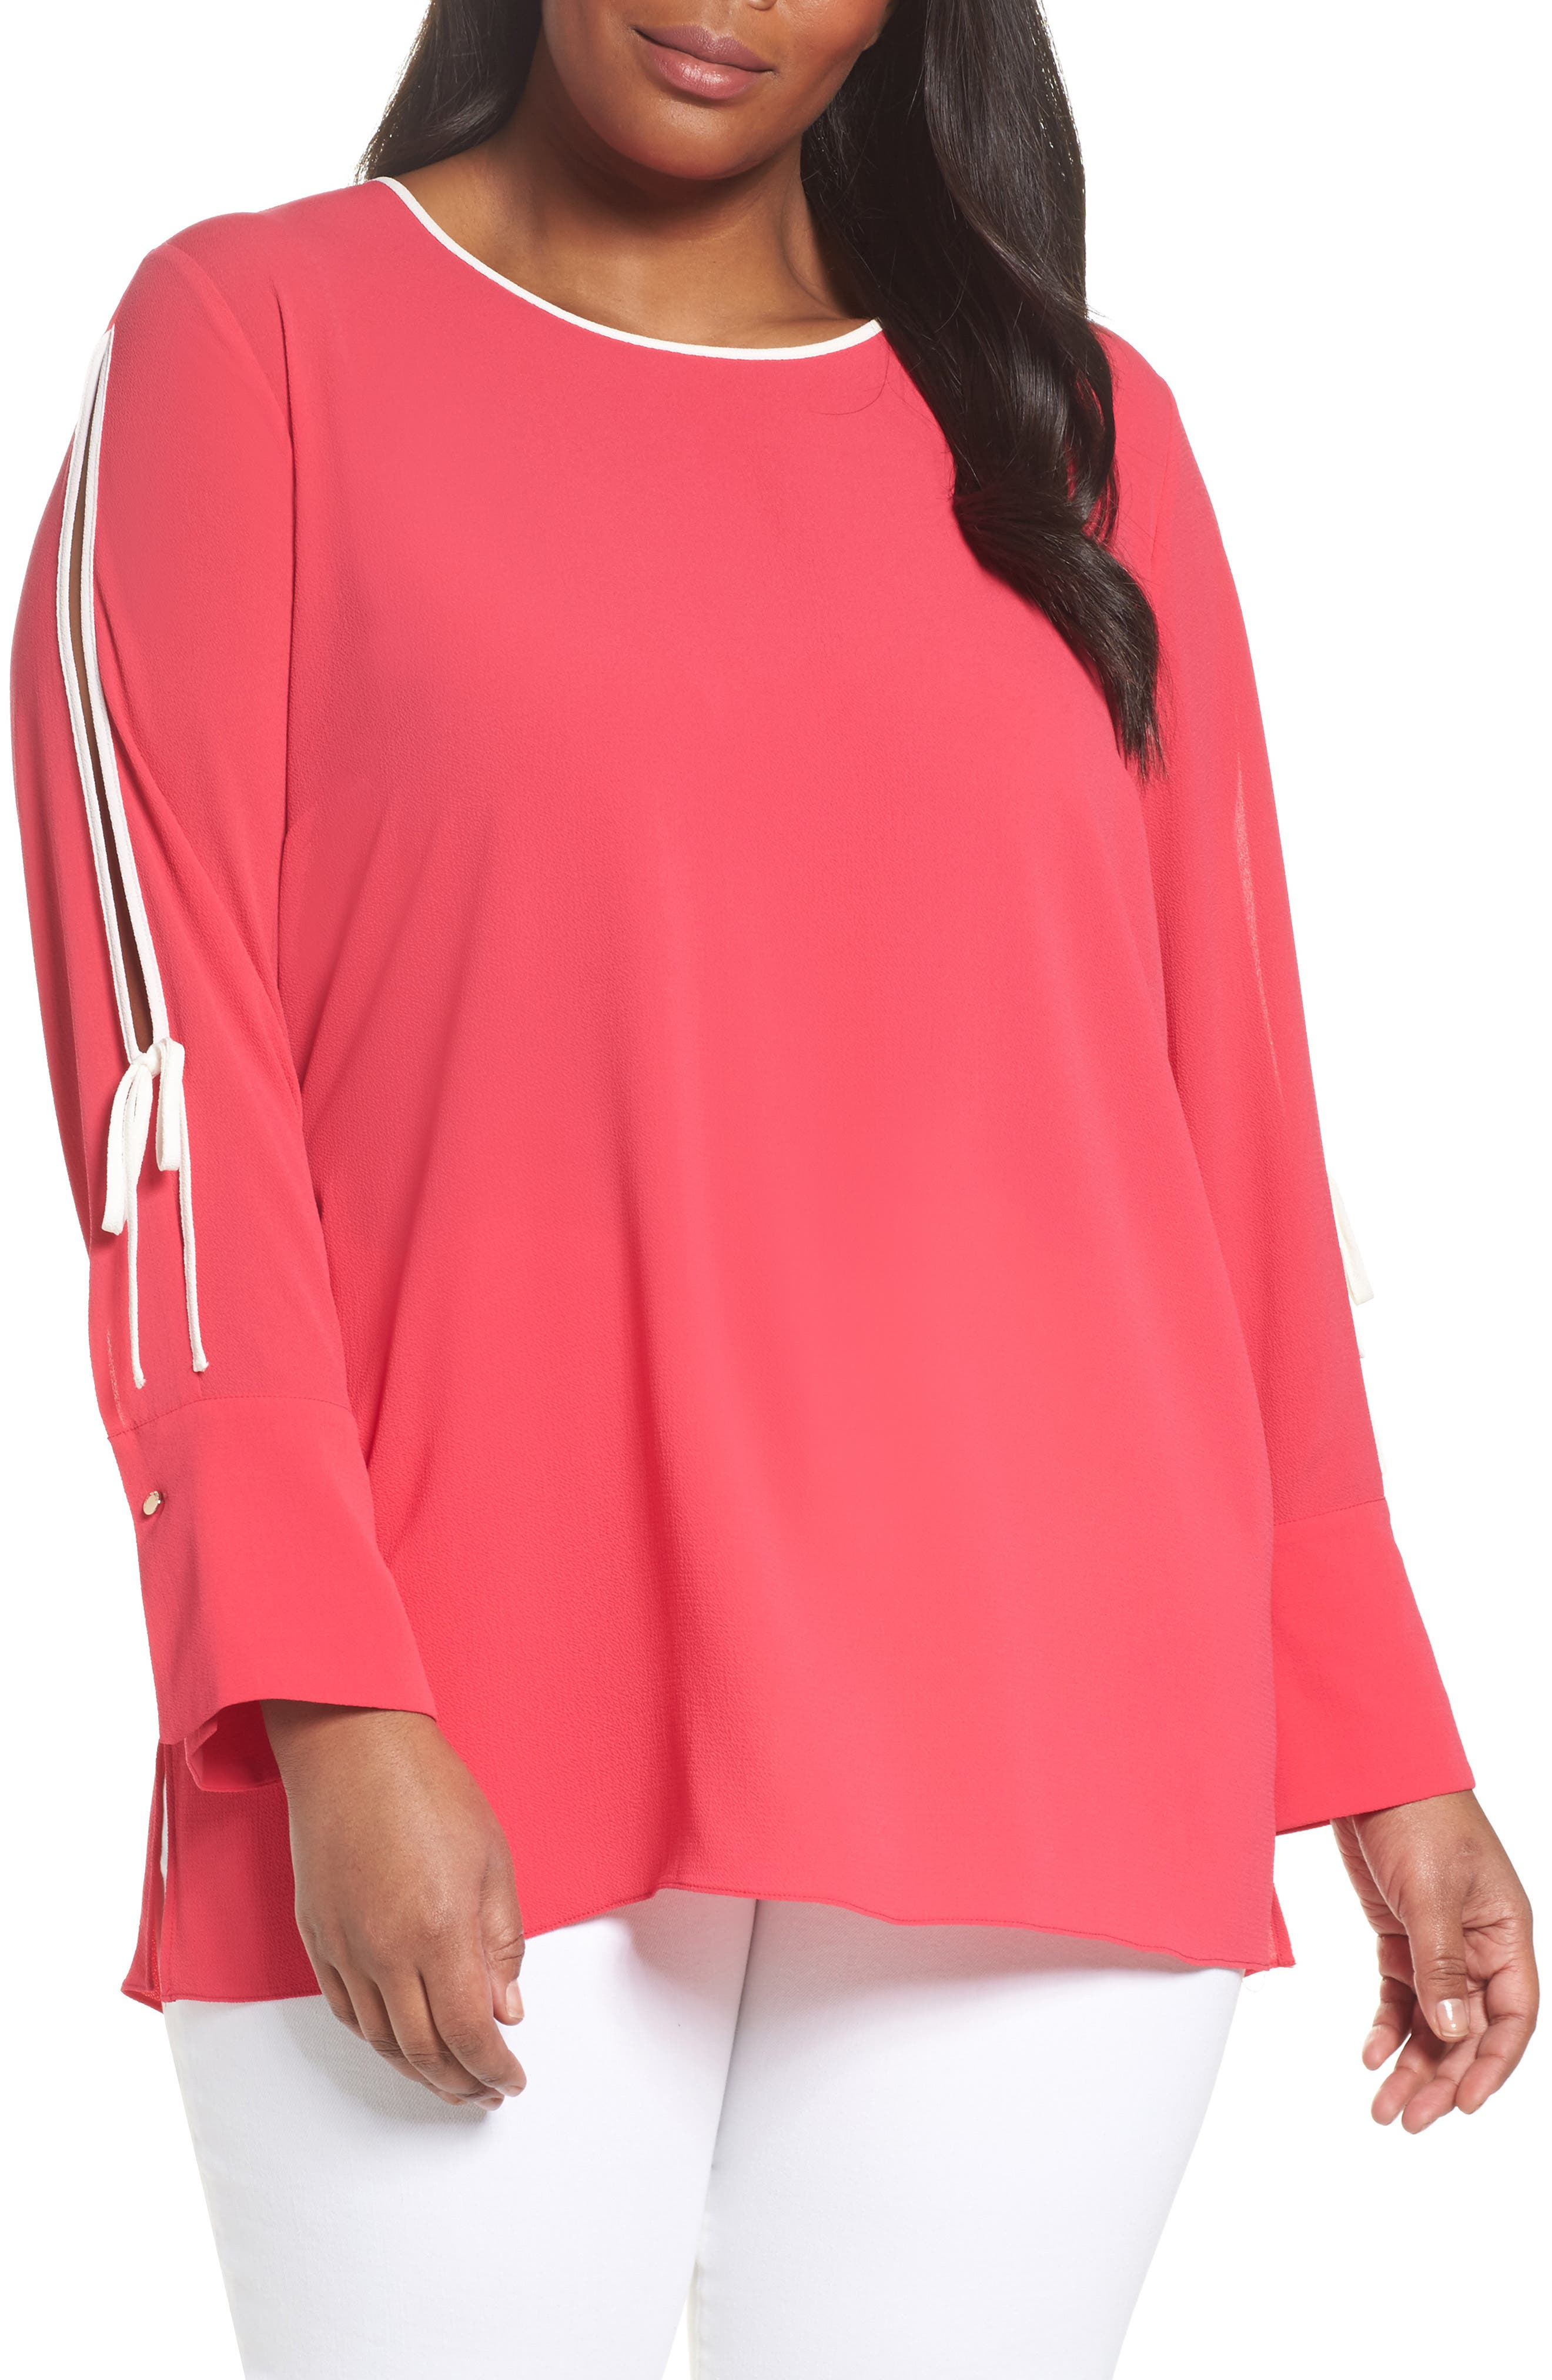 Bell Cuff Split Sleeve Shirt,                         Main,                         color, Vibrant Pink